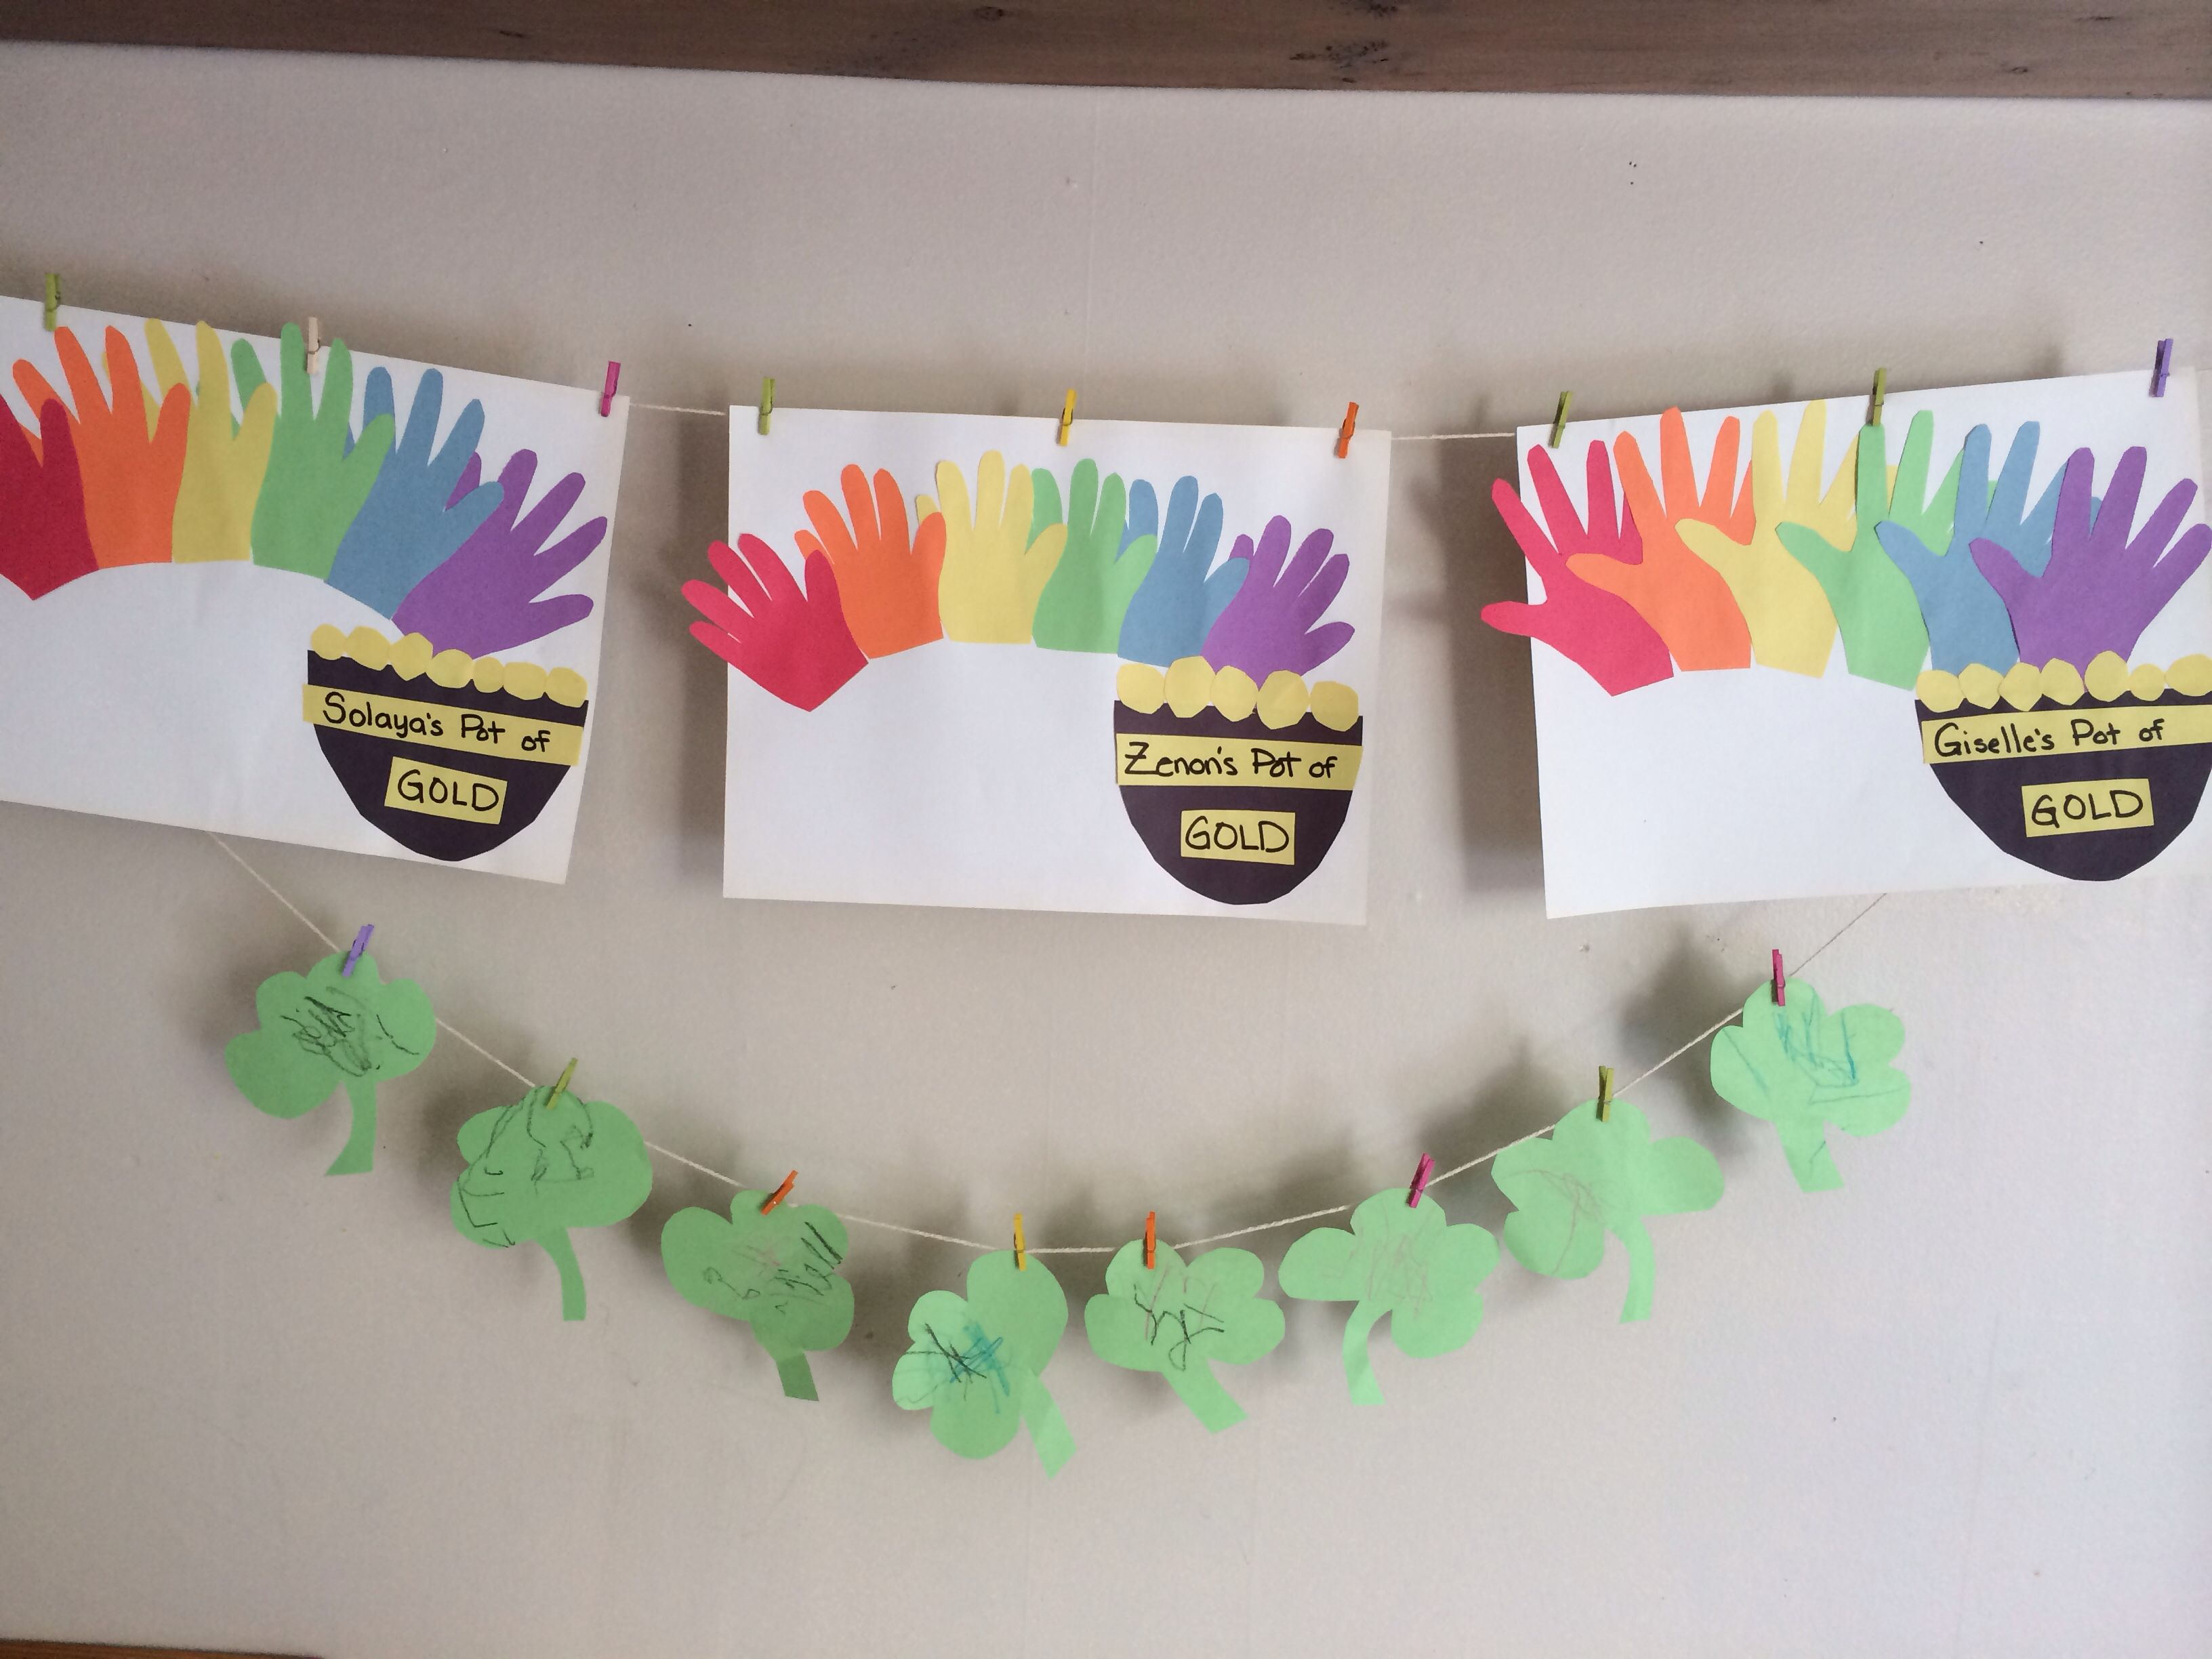 Saint Patricks Day St Pattys Day March Crafts For Toddlers 2 Year